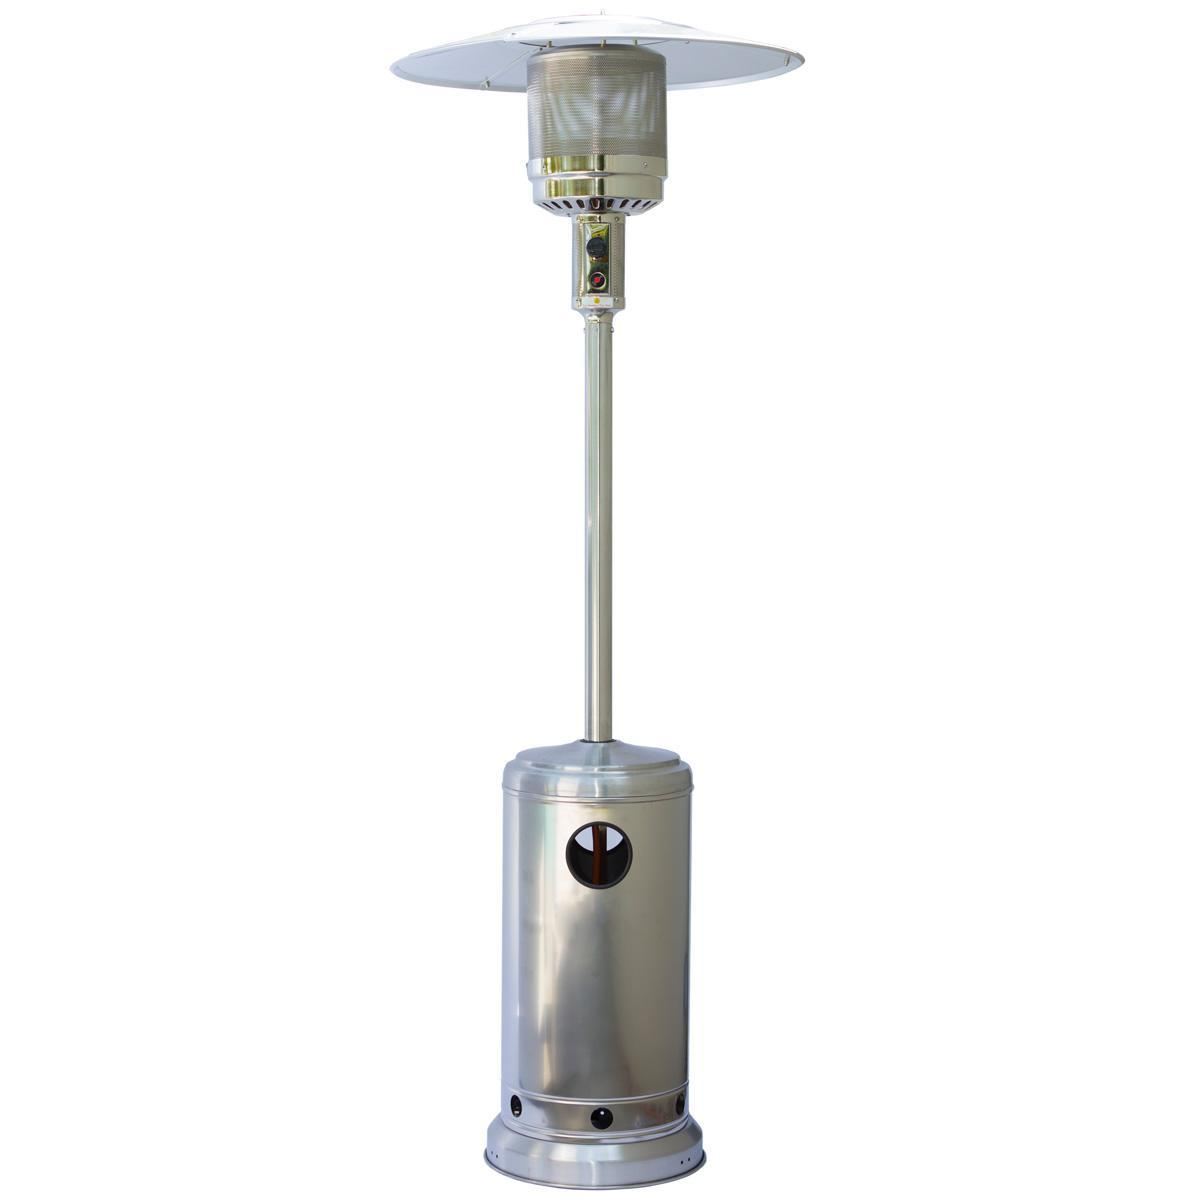 Stainless Steel Heaters : Sherpa kw stainless steel patio heater heat outdoors